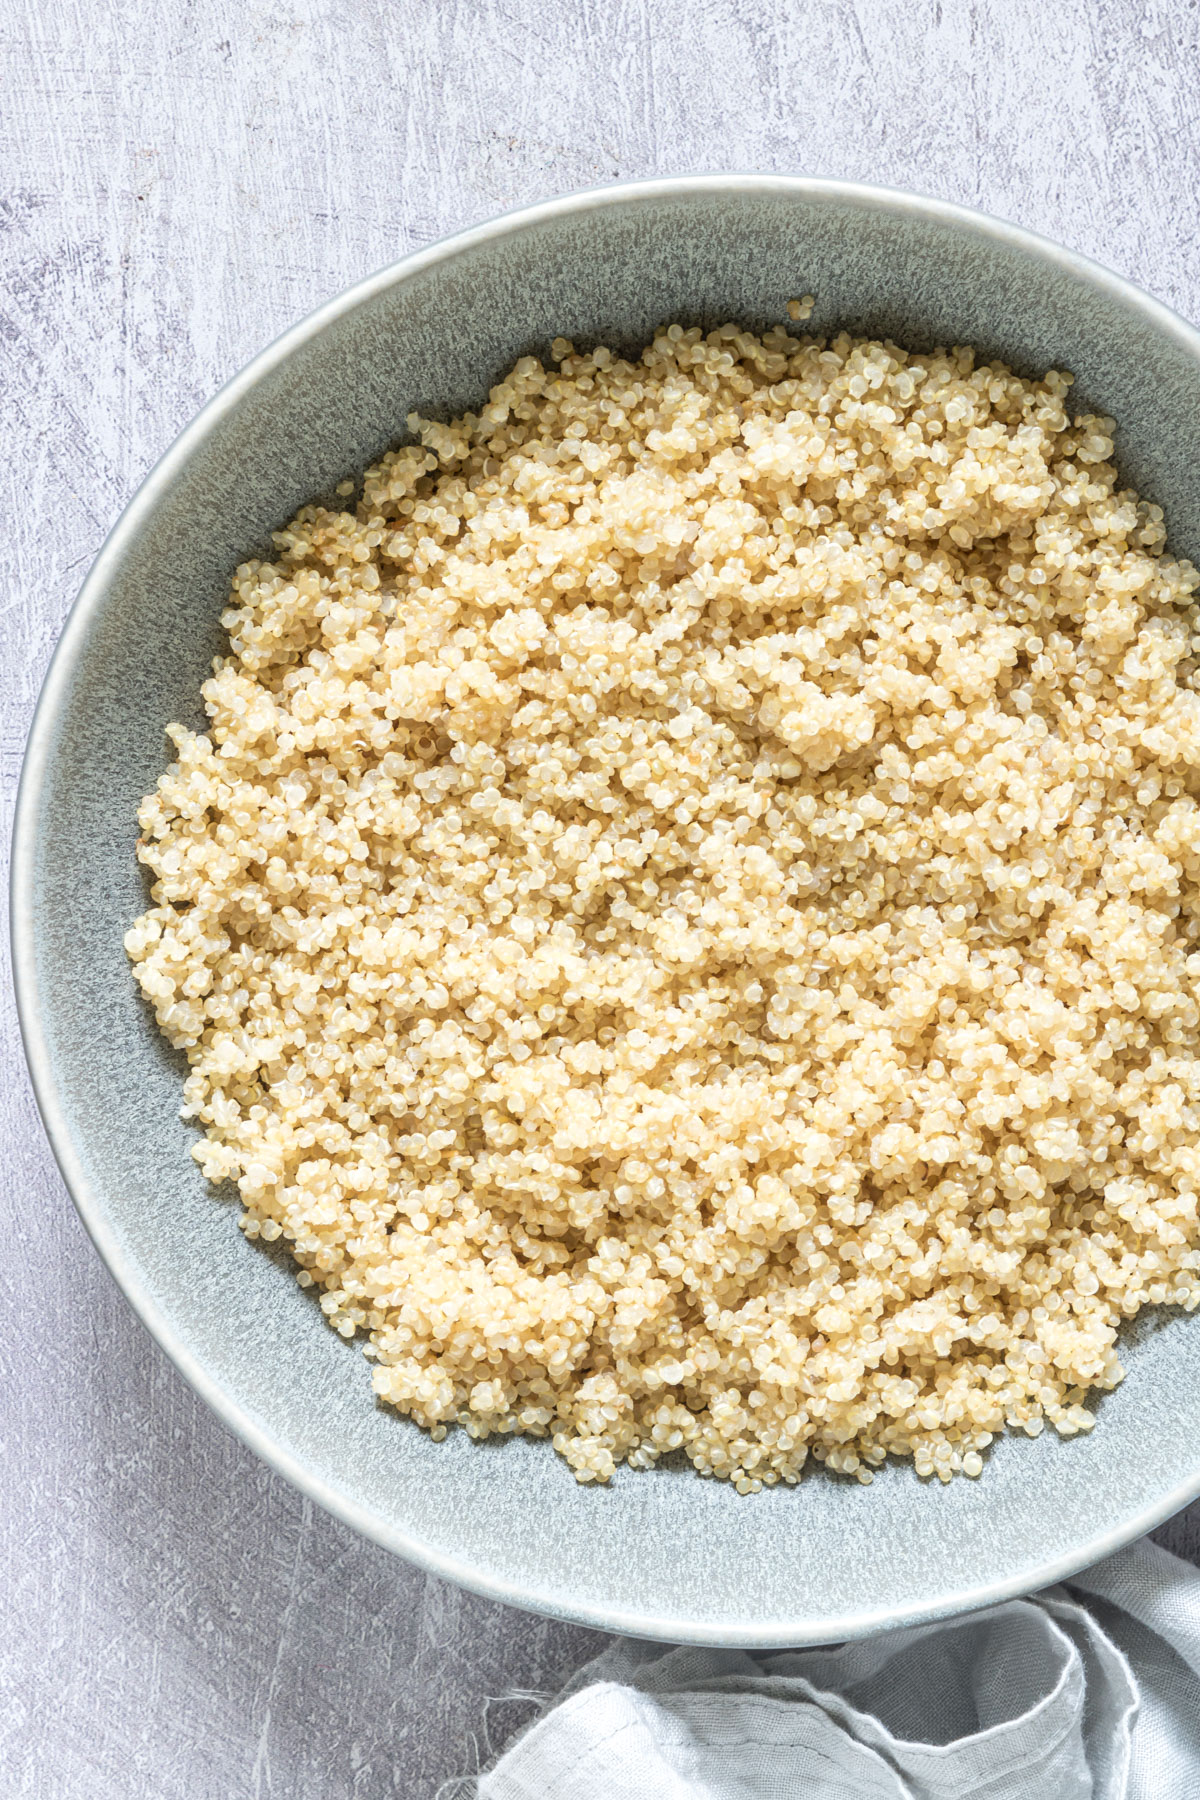 a bowl of cooked quinoa on a table